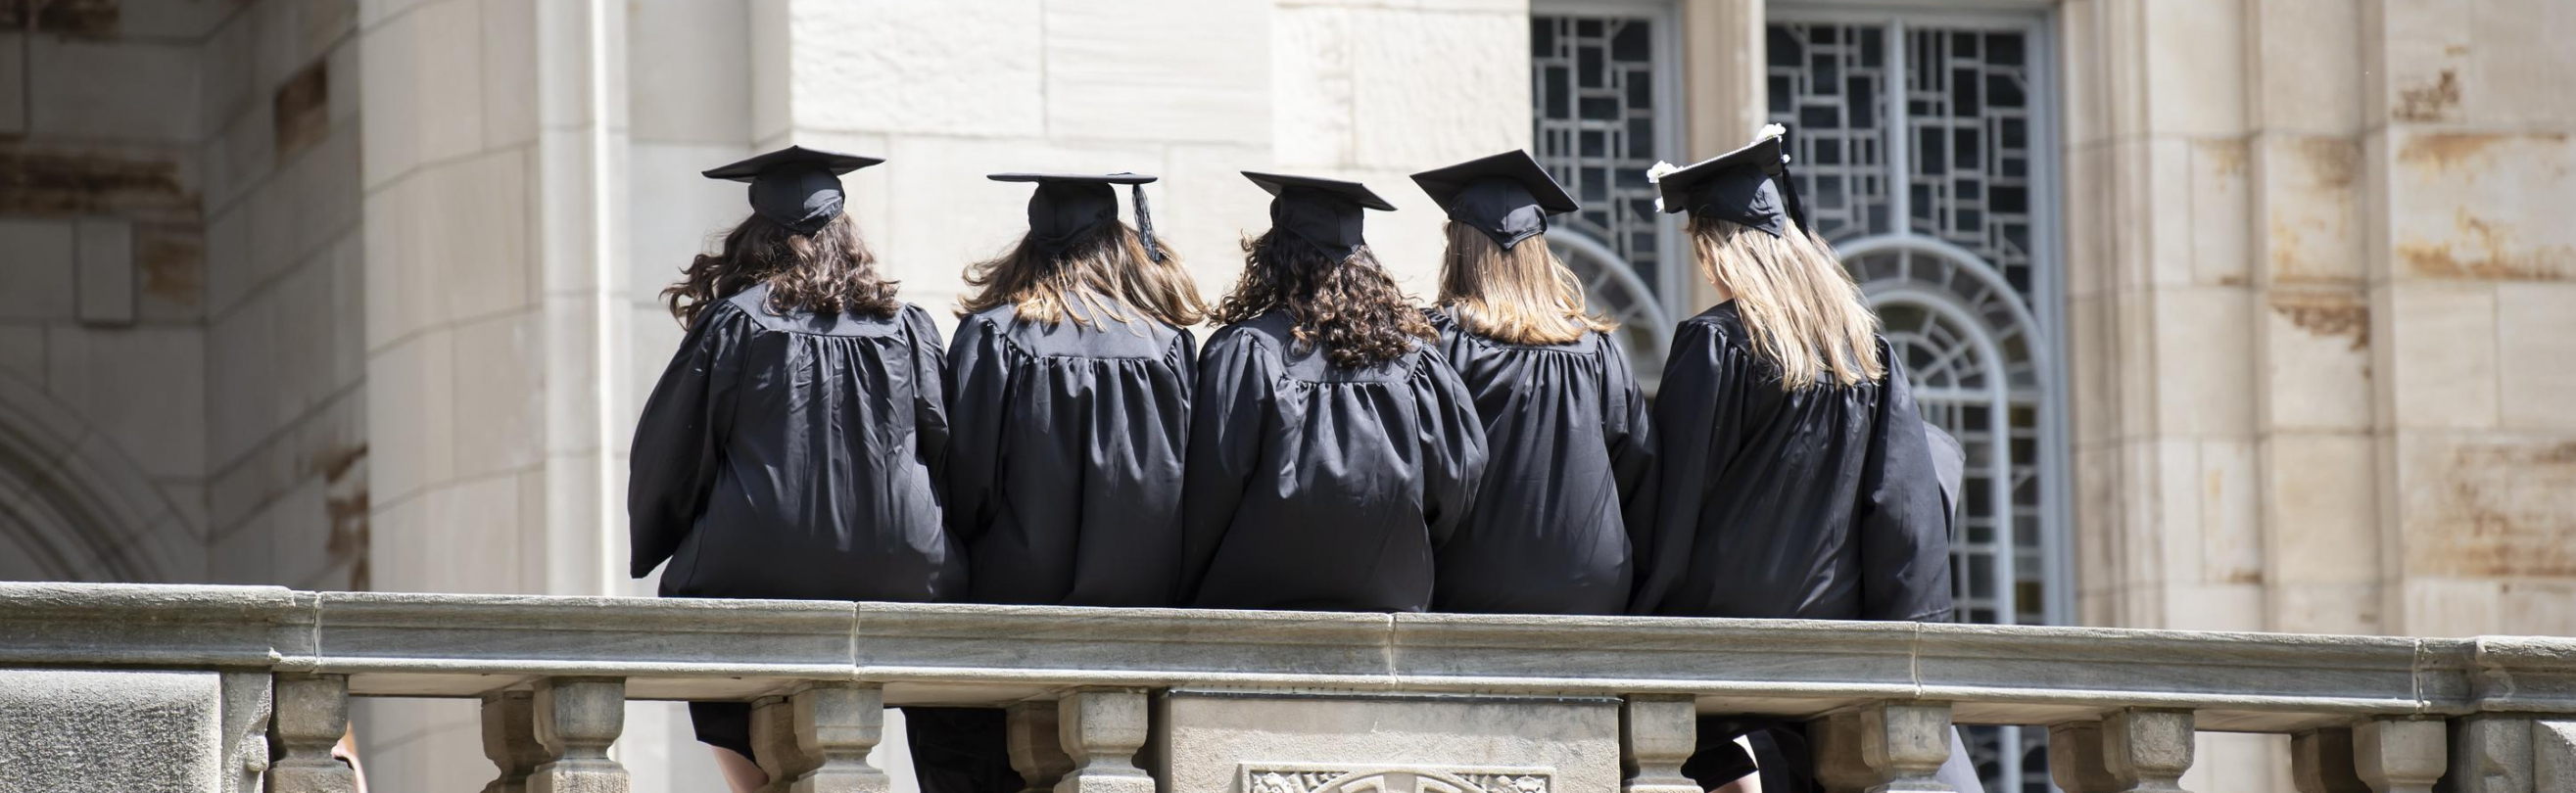 Graduates posing in their caps and gowns